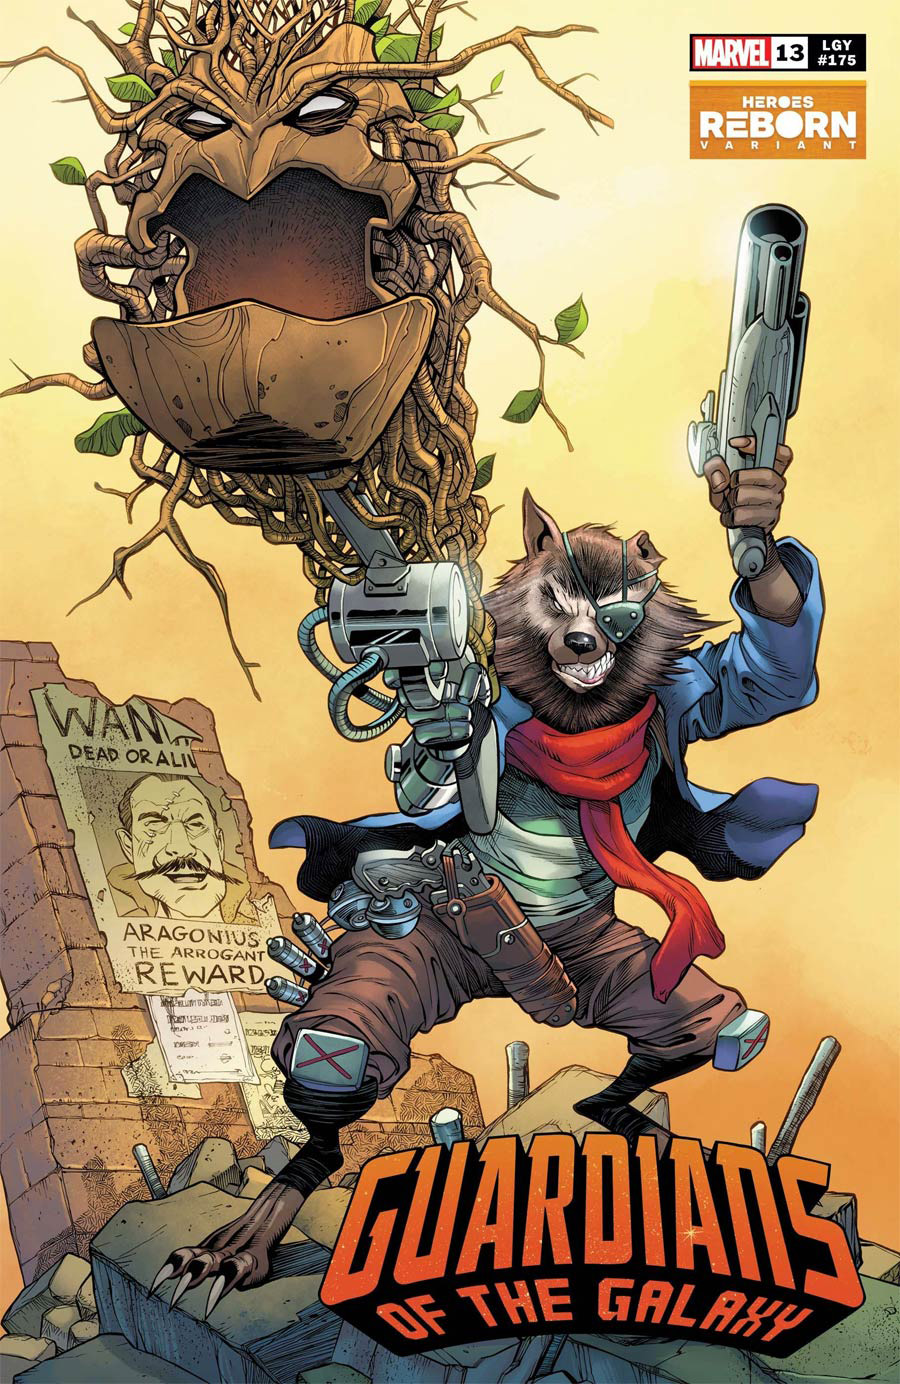 Guardians Of The Galaxy Vol 6 #13 Cover B Variant Carlos Pacheco Heroes Reborn Cover